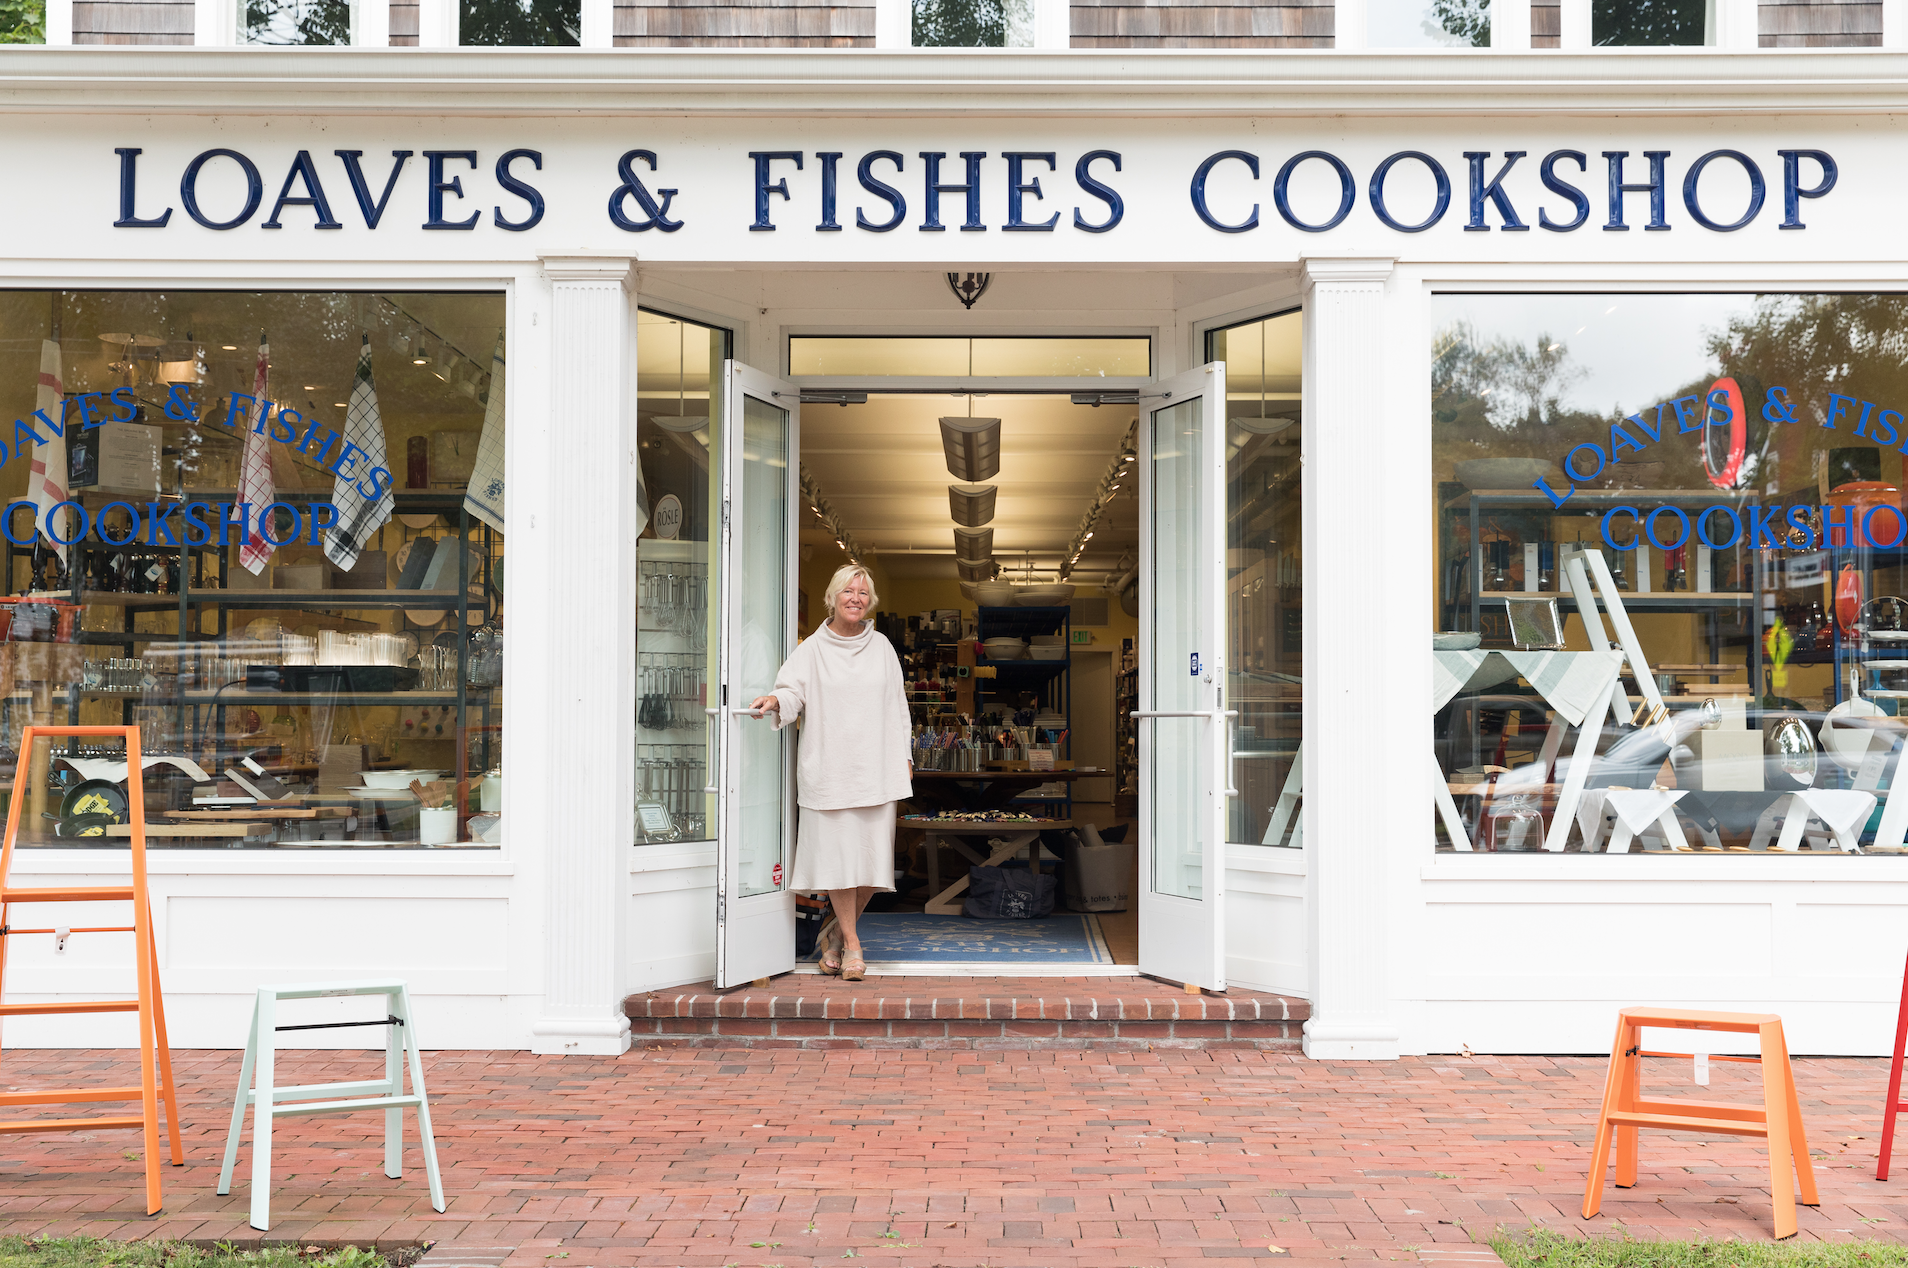 Sybille van Kempen in front of Loaves and Fishes